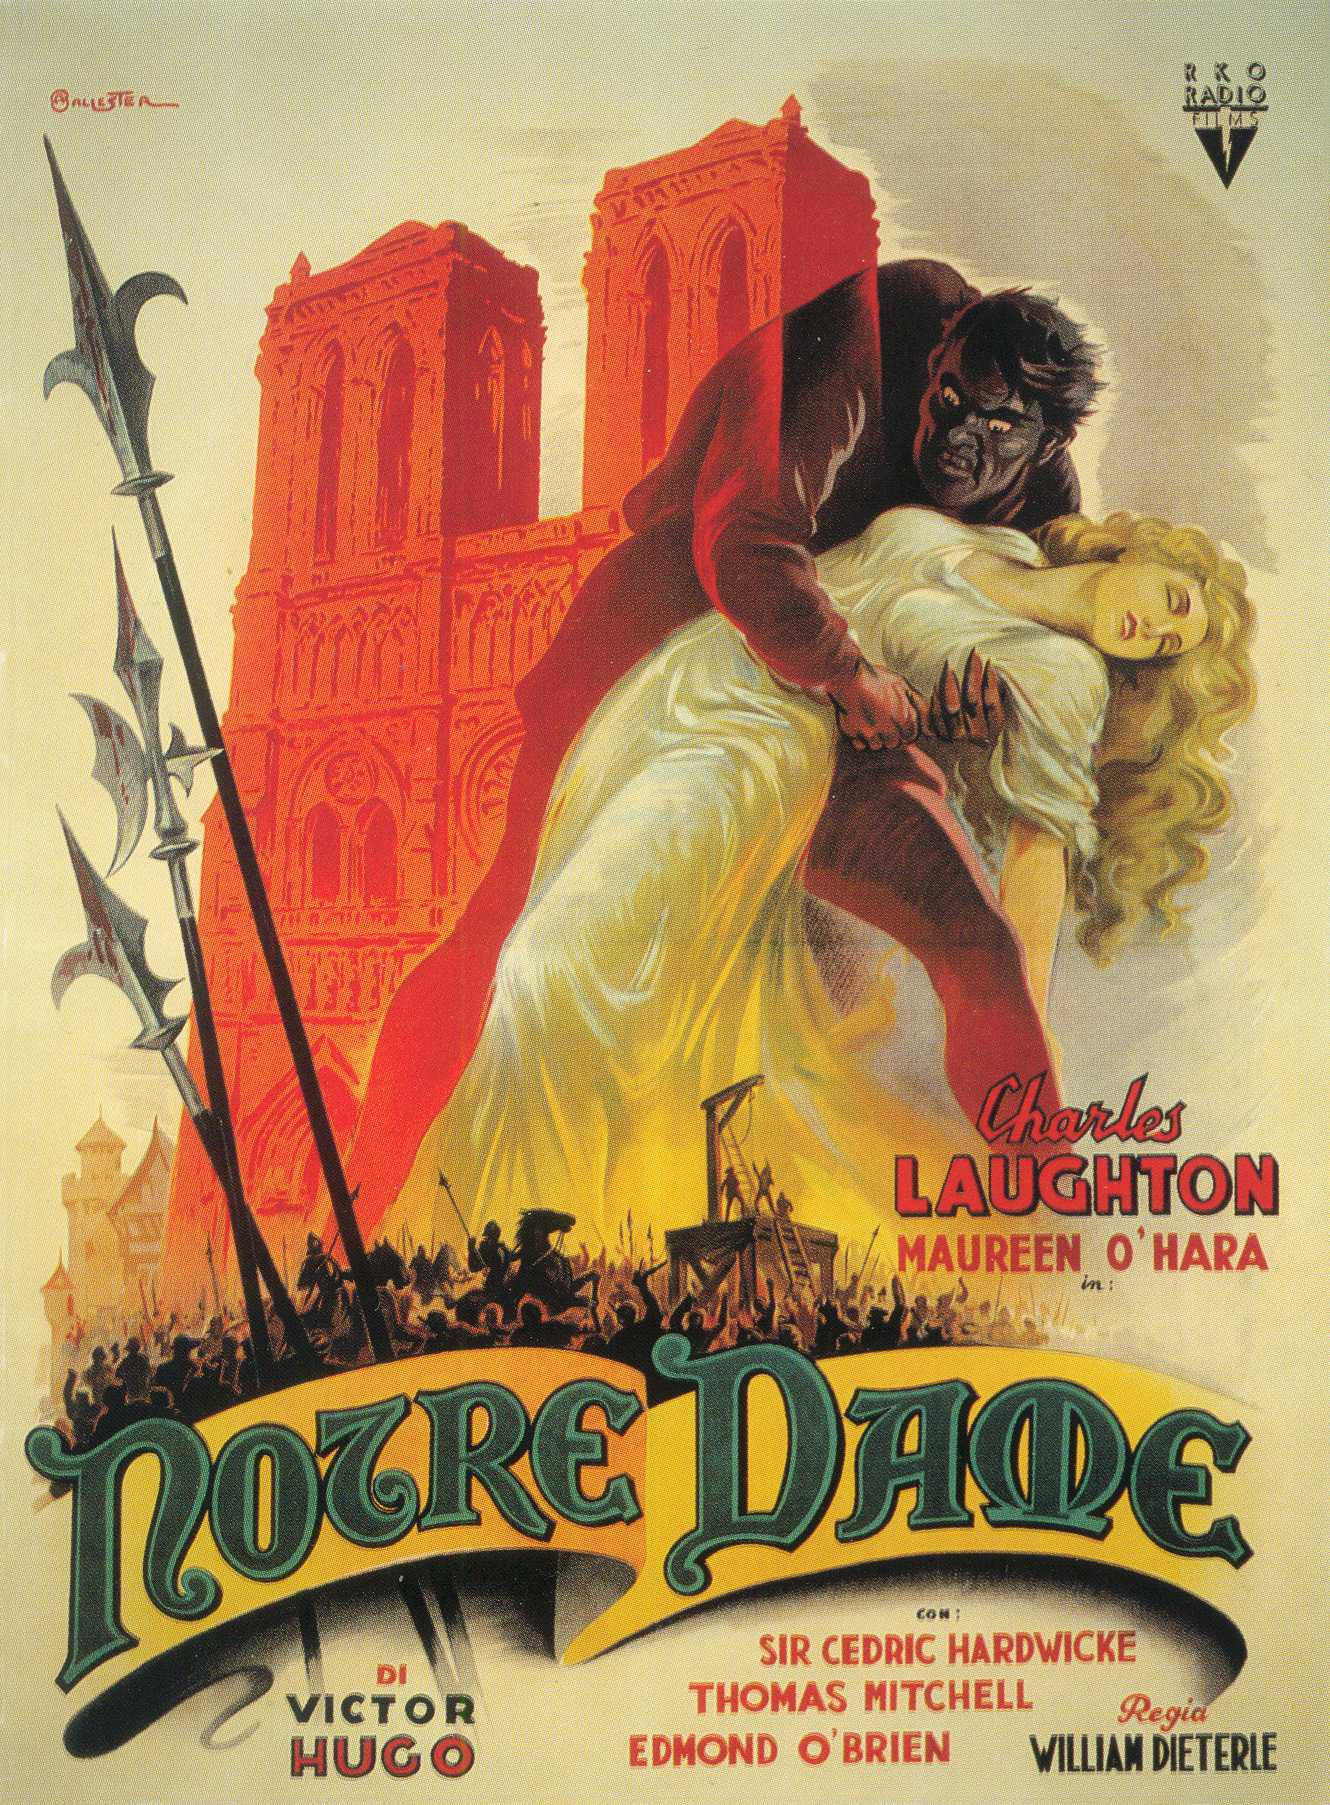 The Hunchback of Notre Dame (1939) Italian poster by Anselmo Ballester